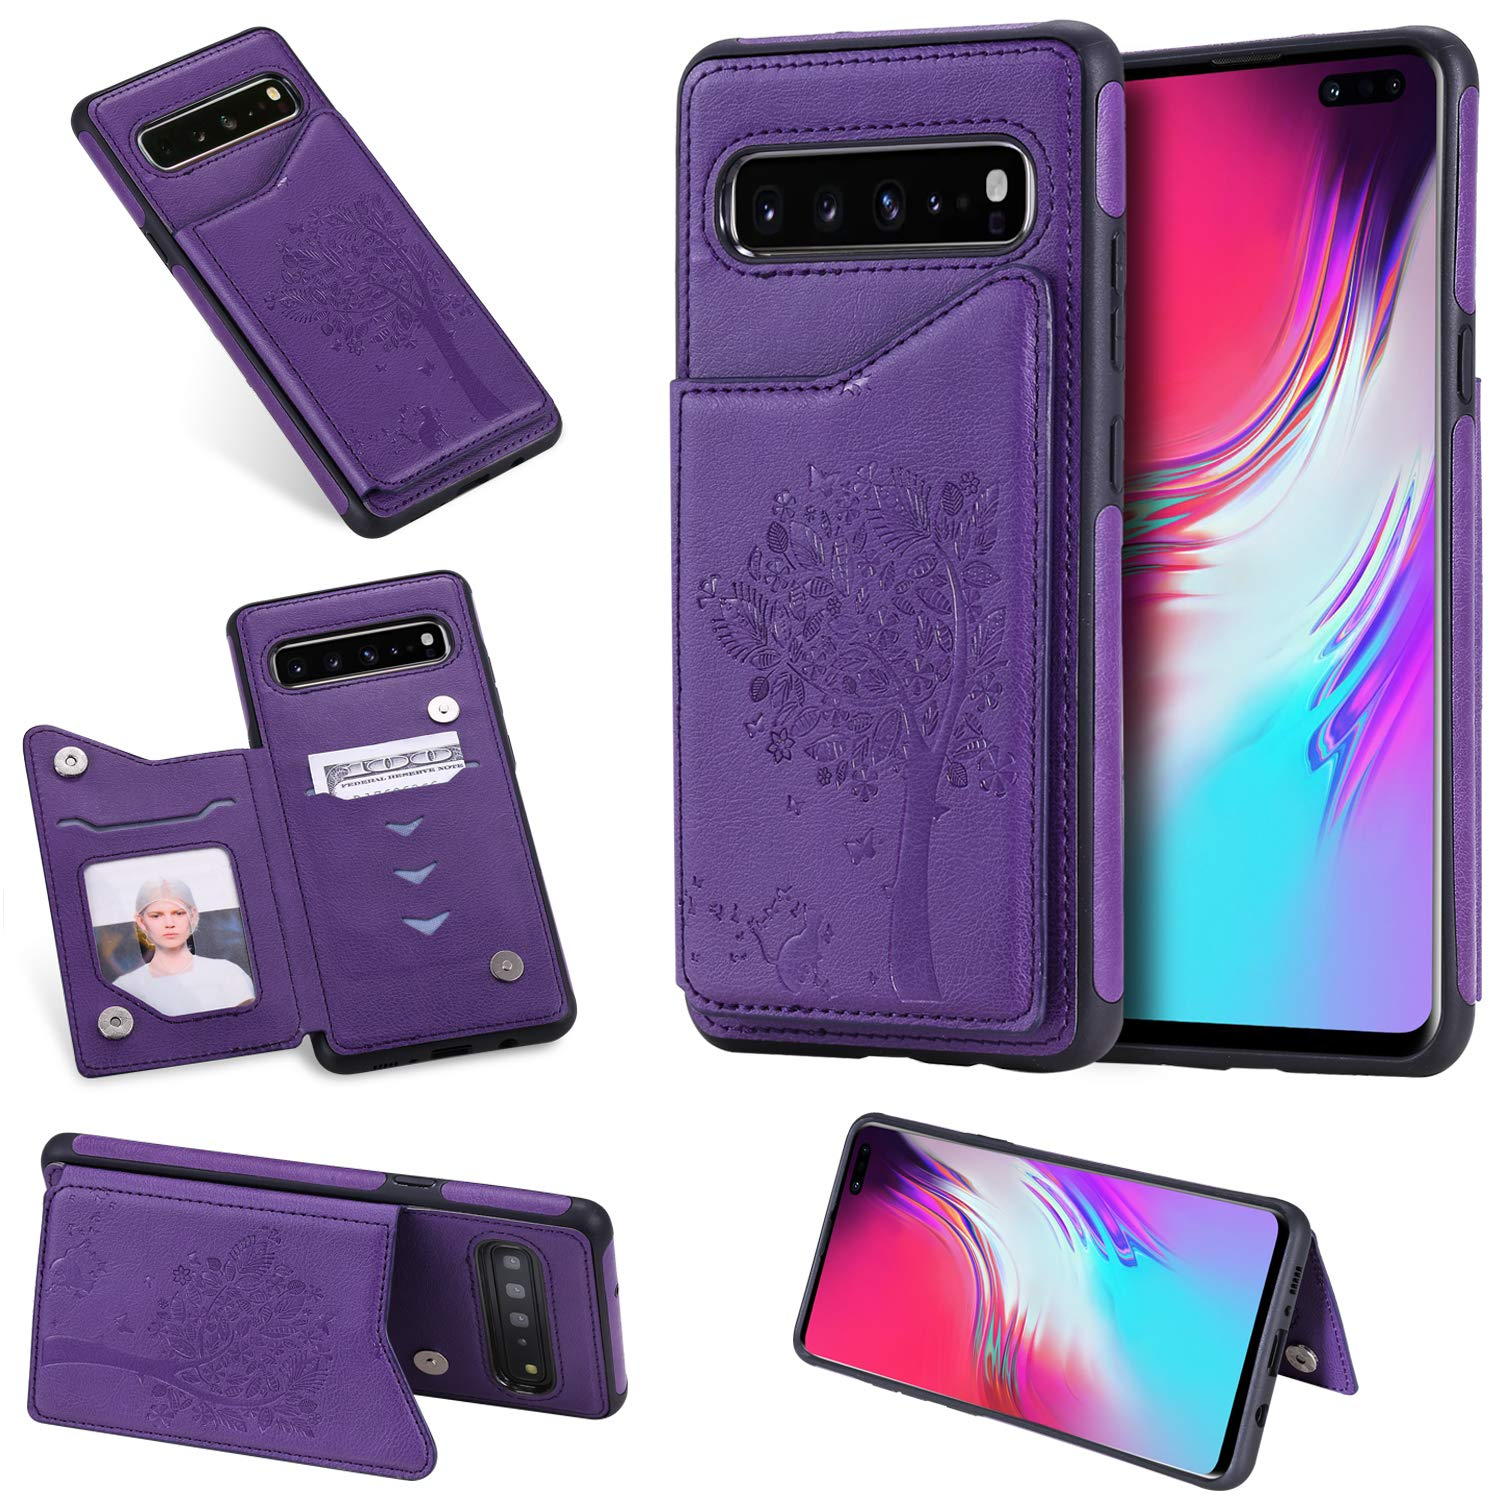 Tznzxm Galaxy S10 5G Case, Fashion Tree Cat PU Leather Kickstand Card Slots Double Magnetic Clasp Durable Shockproof Soft TPU Back Wallet Flip Cover for Samsung Galaxy S10 5G 2019 Purple by Tznzxm